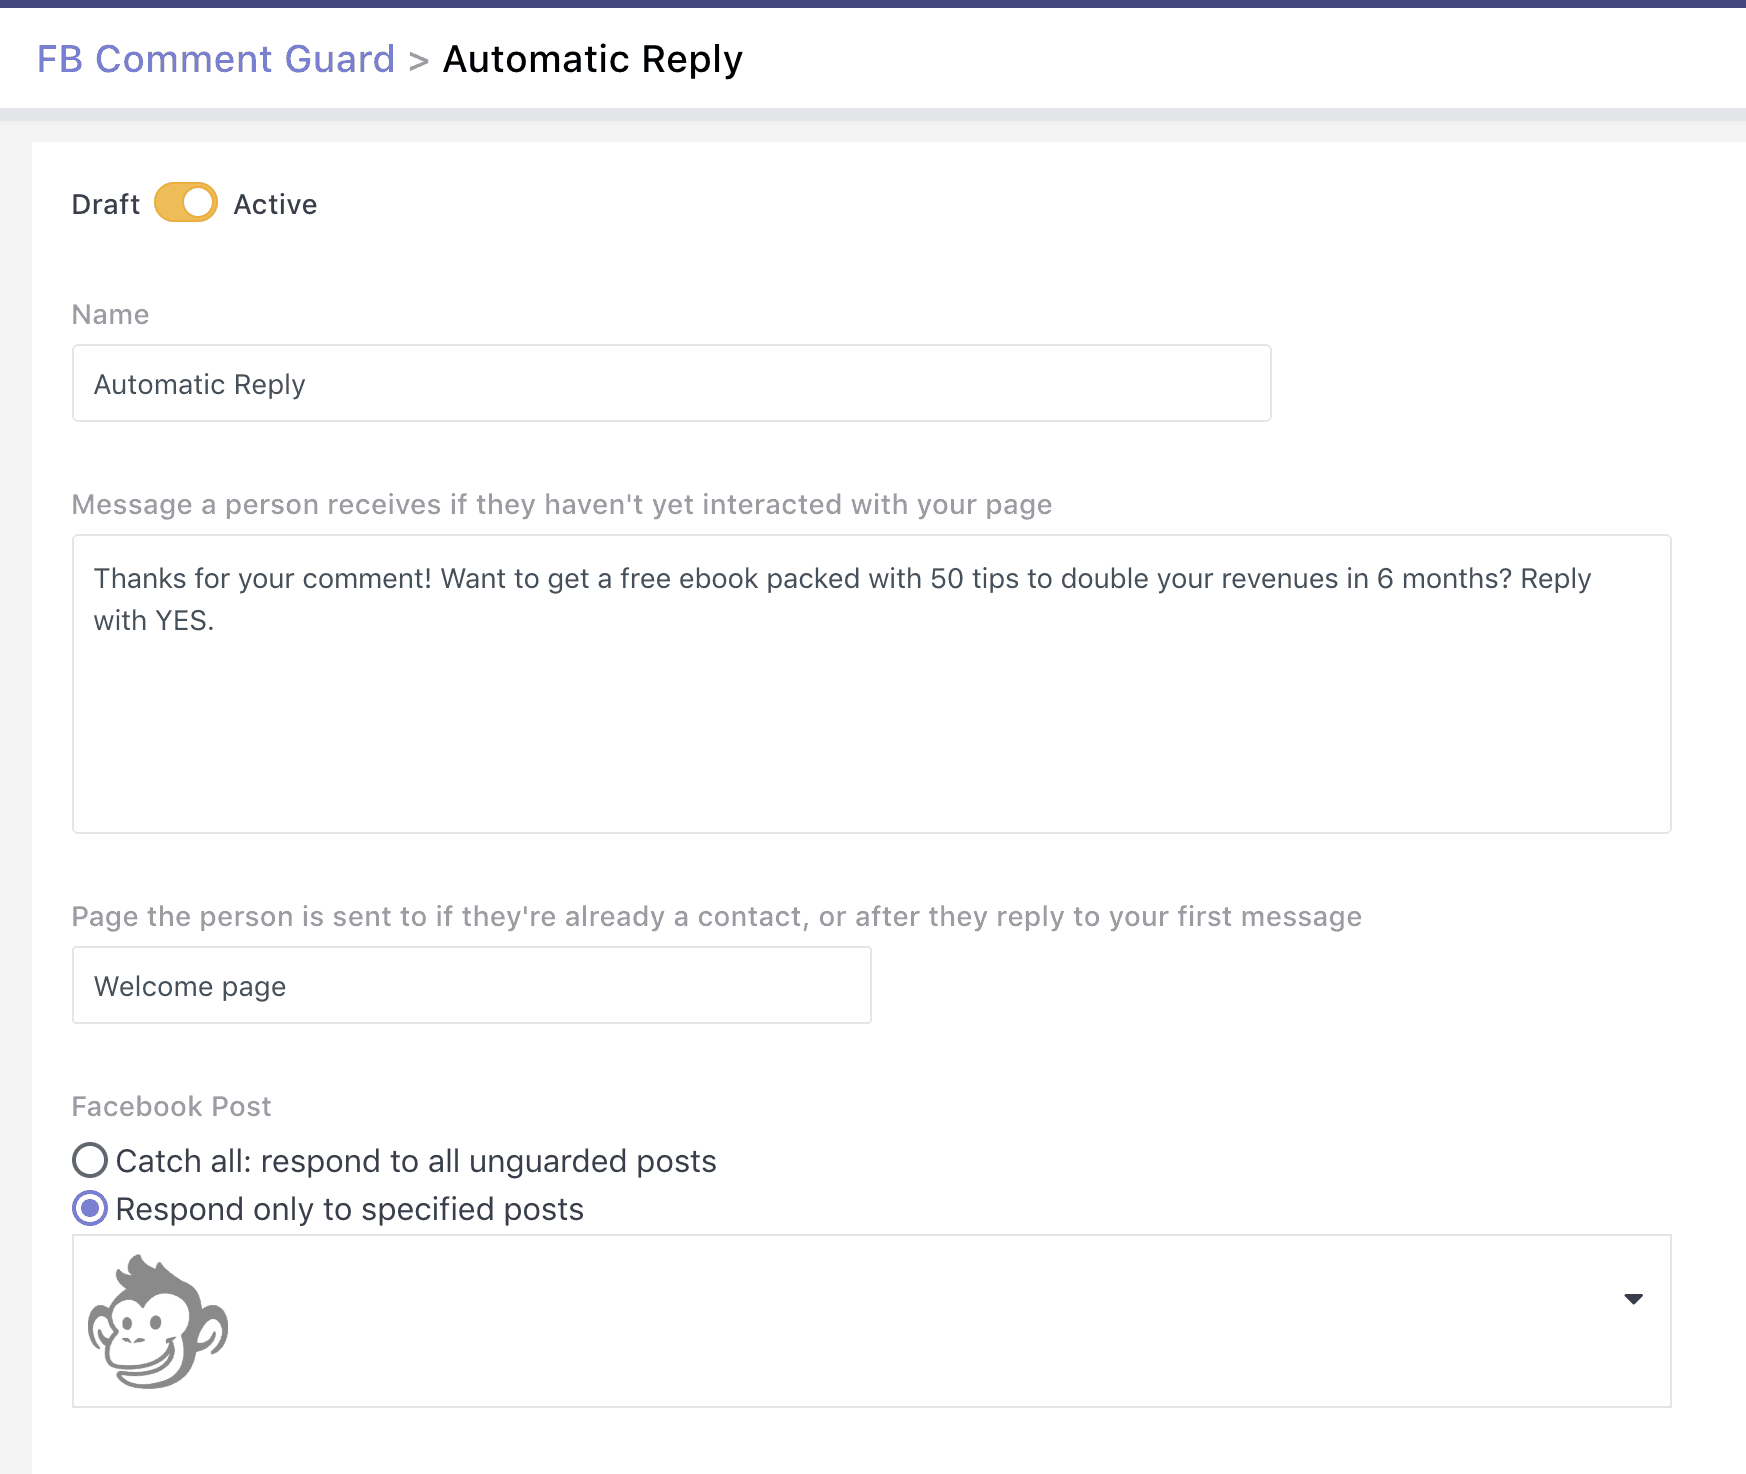 automatic reply to facebook comments on a page